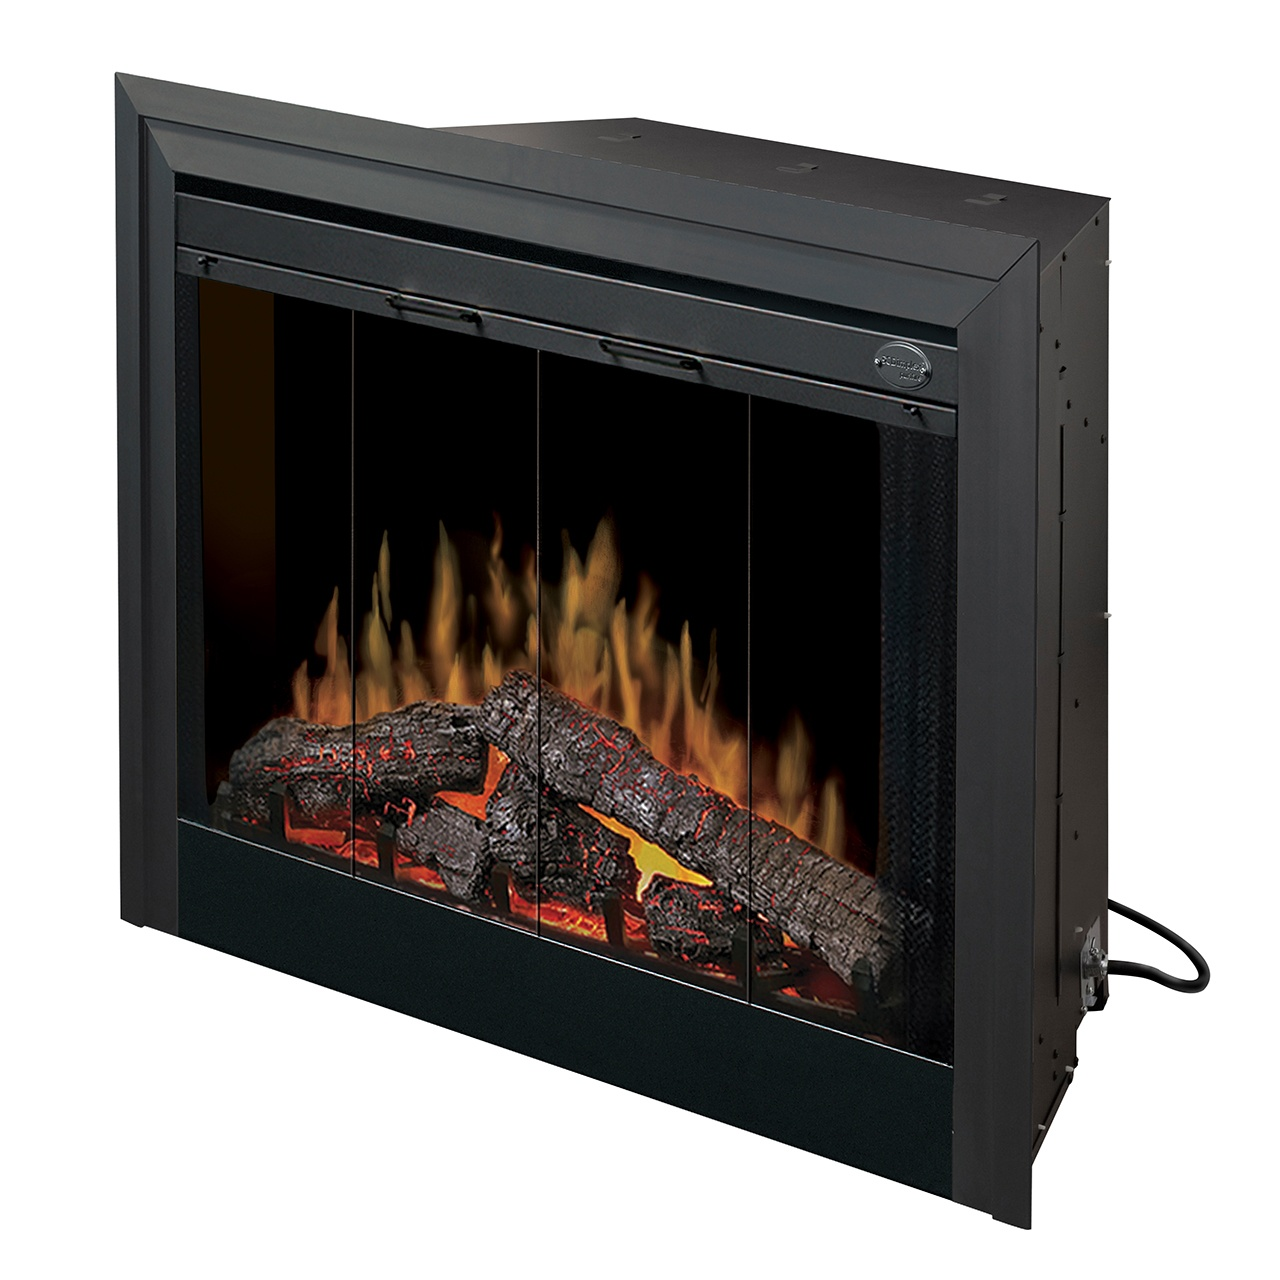 Dimplex 39 Quot Bf39stp Electric Fireplace Electric Fireplaces